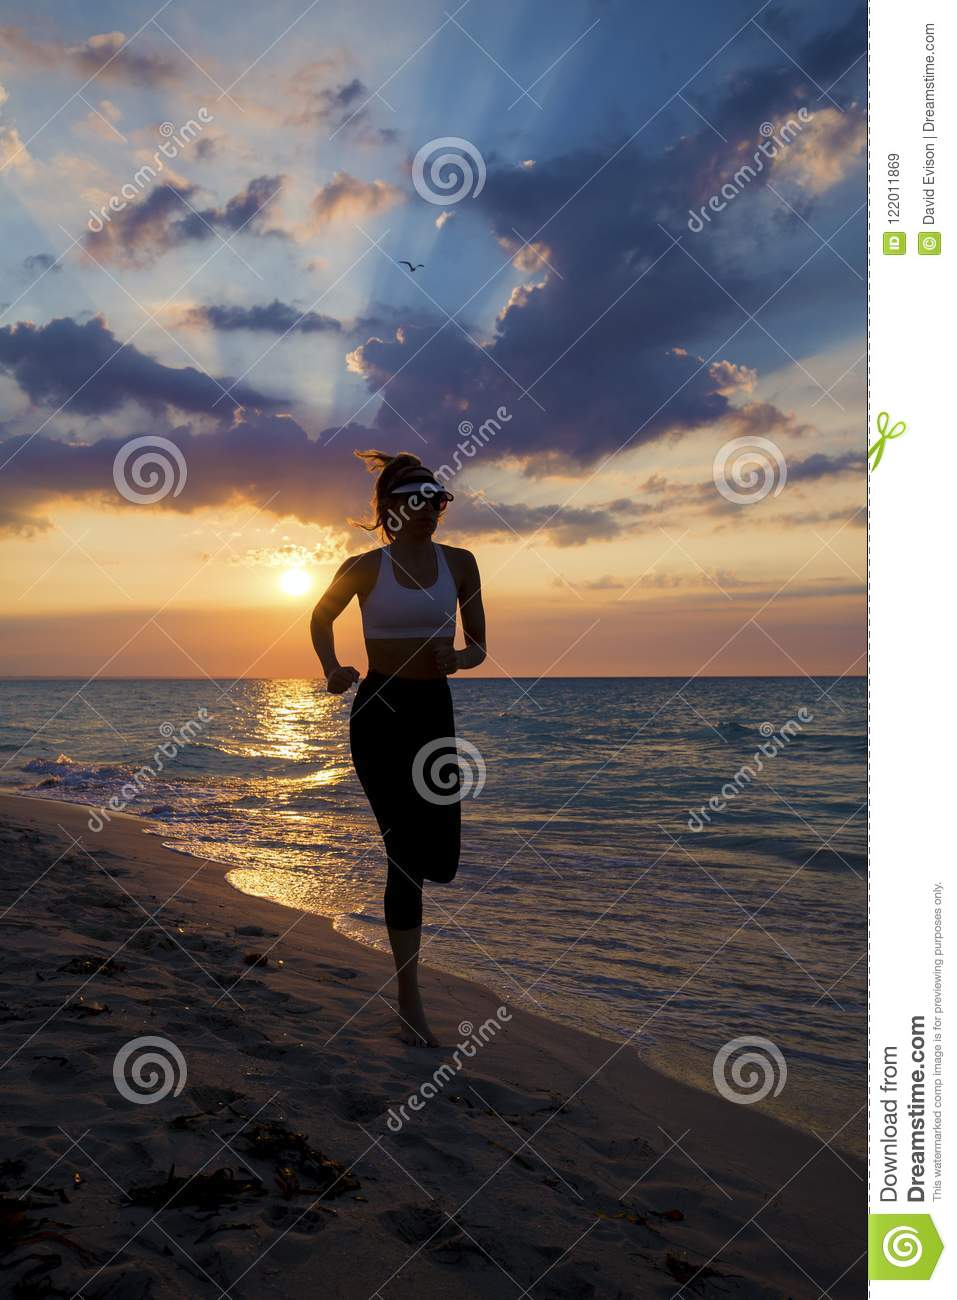 Woman running on the beach during sunset.